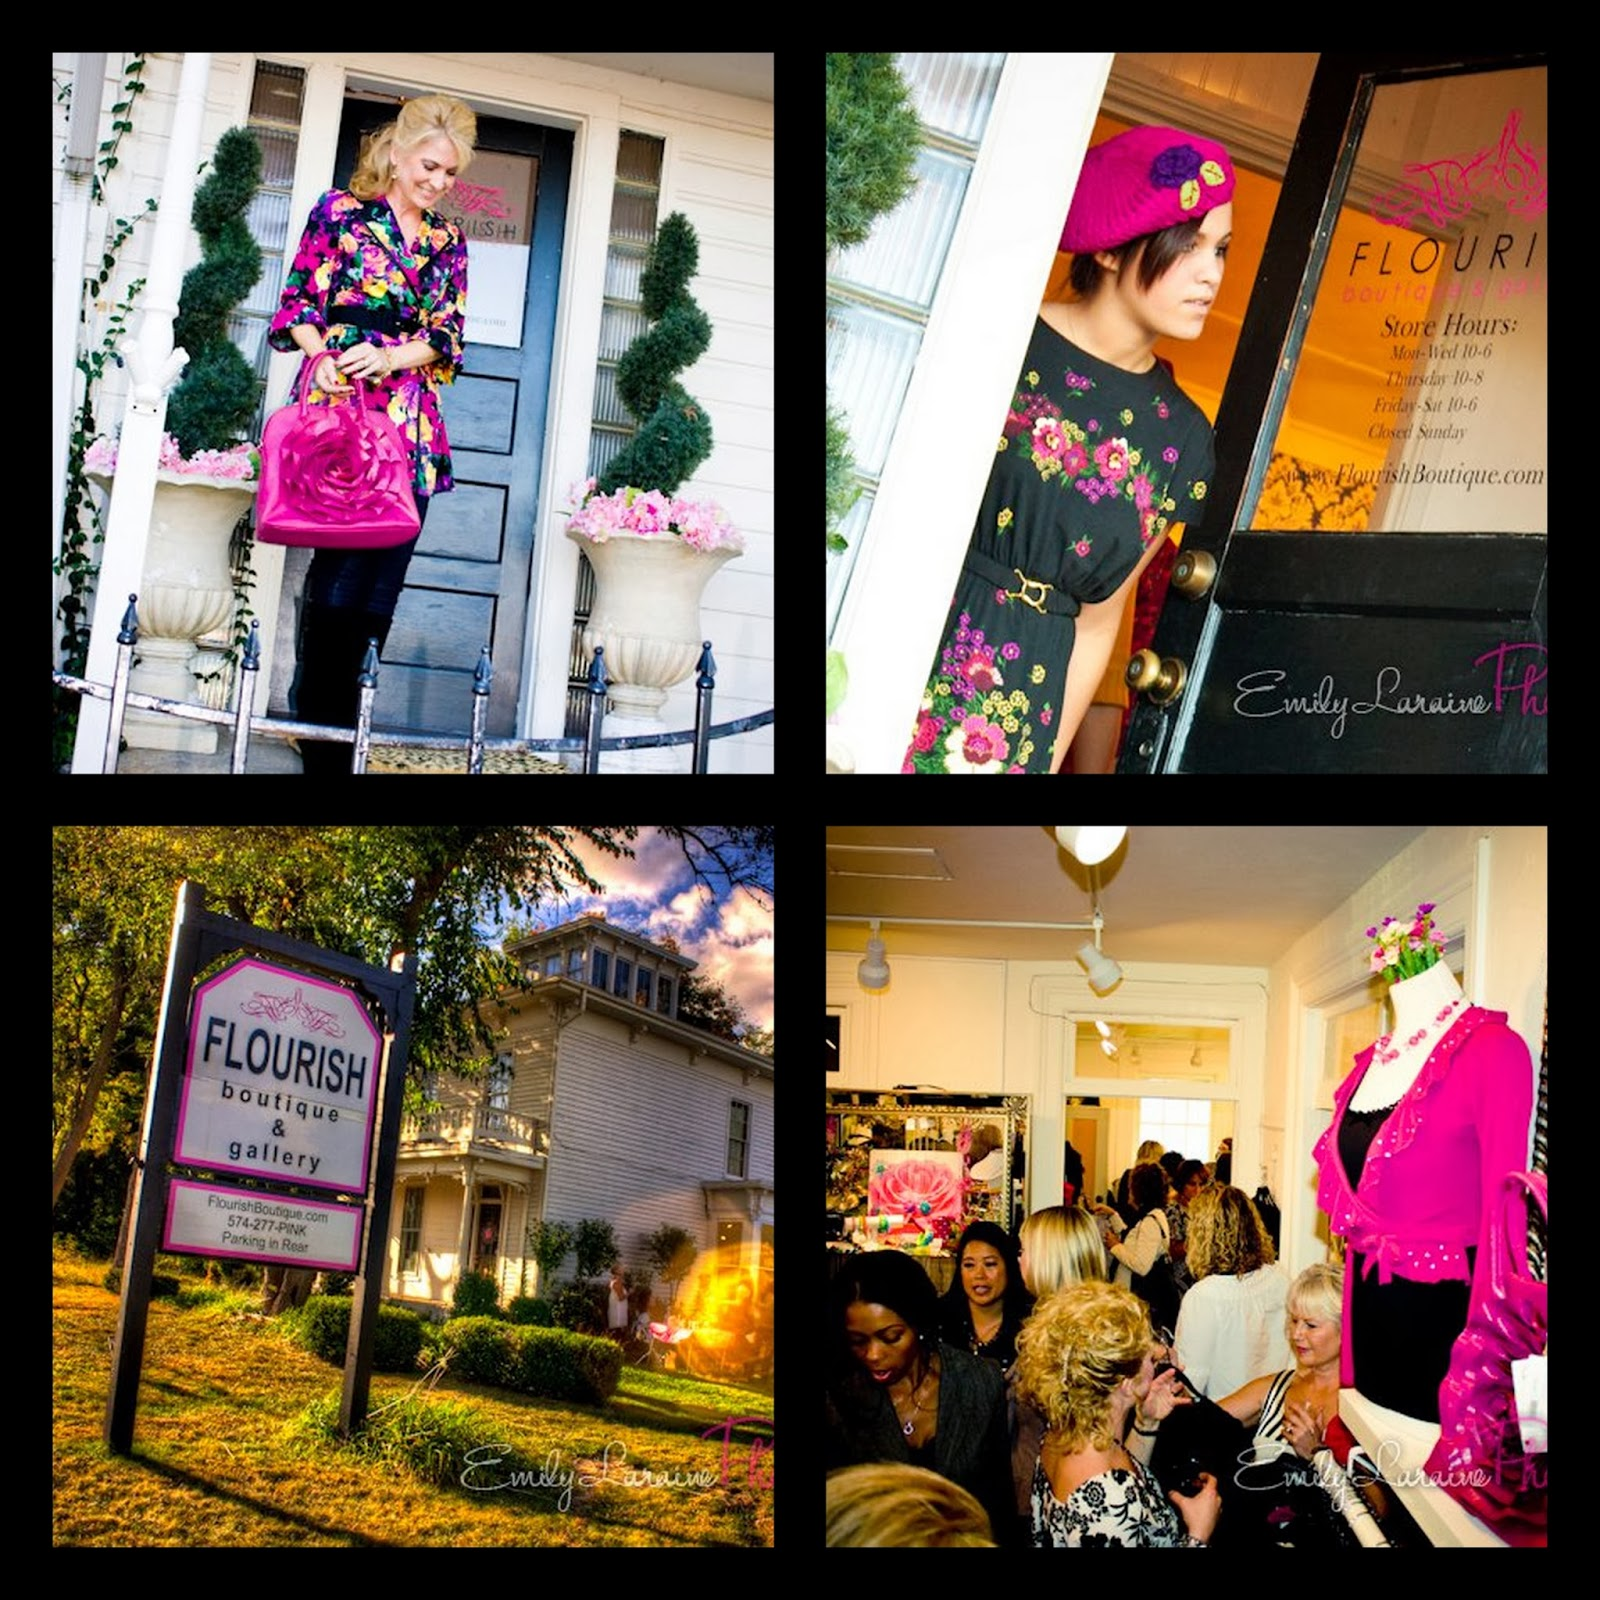 fall fashion show flourish boutique